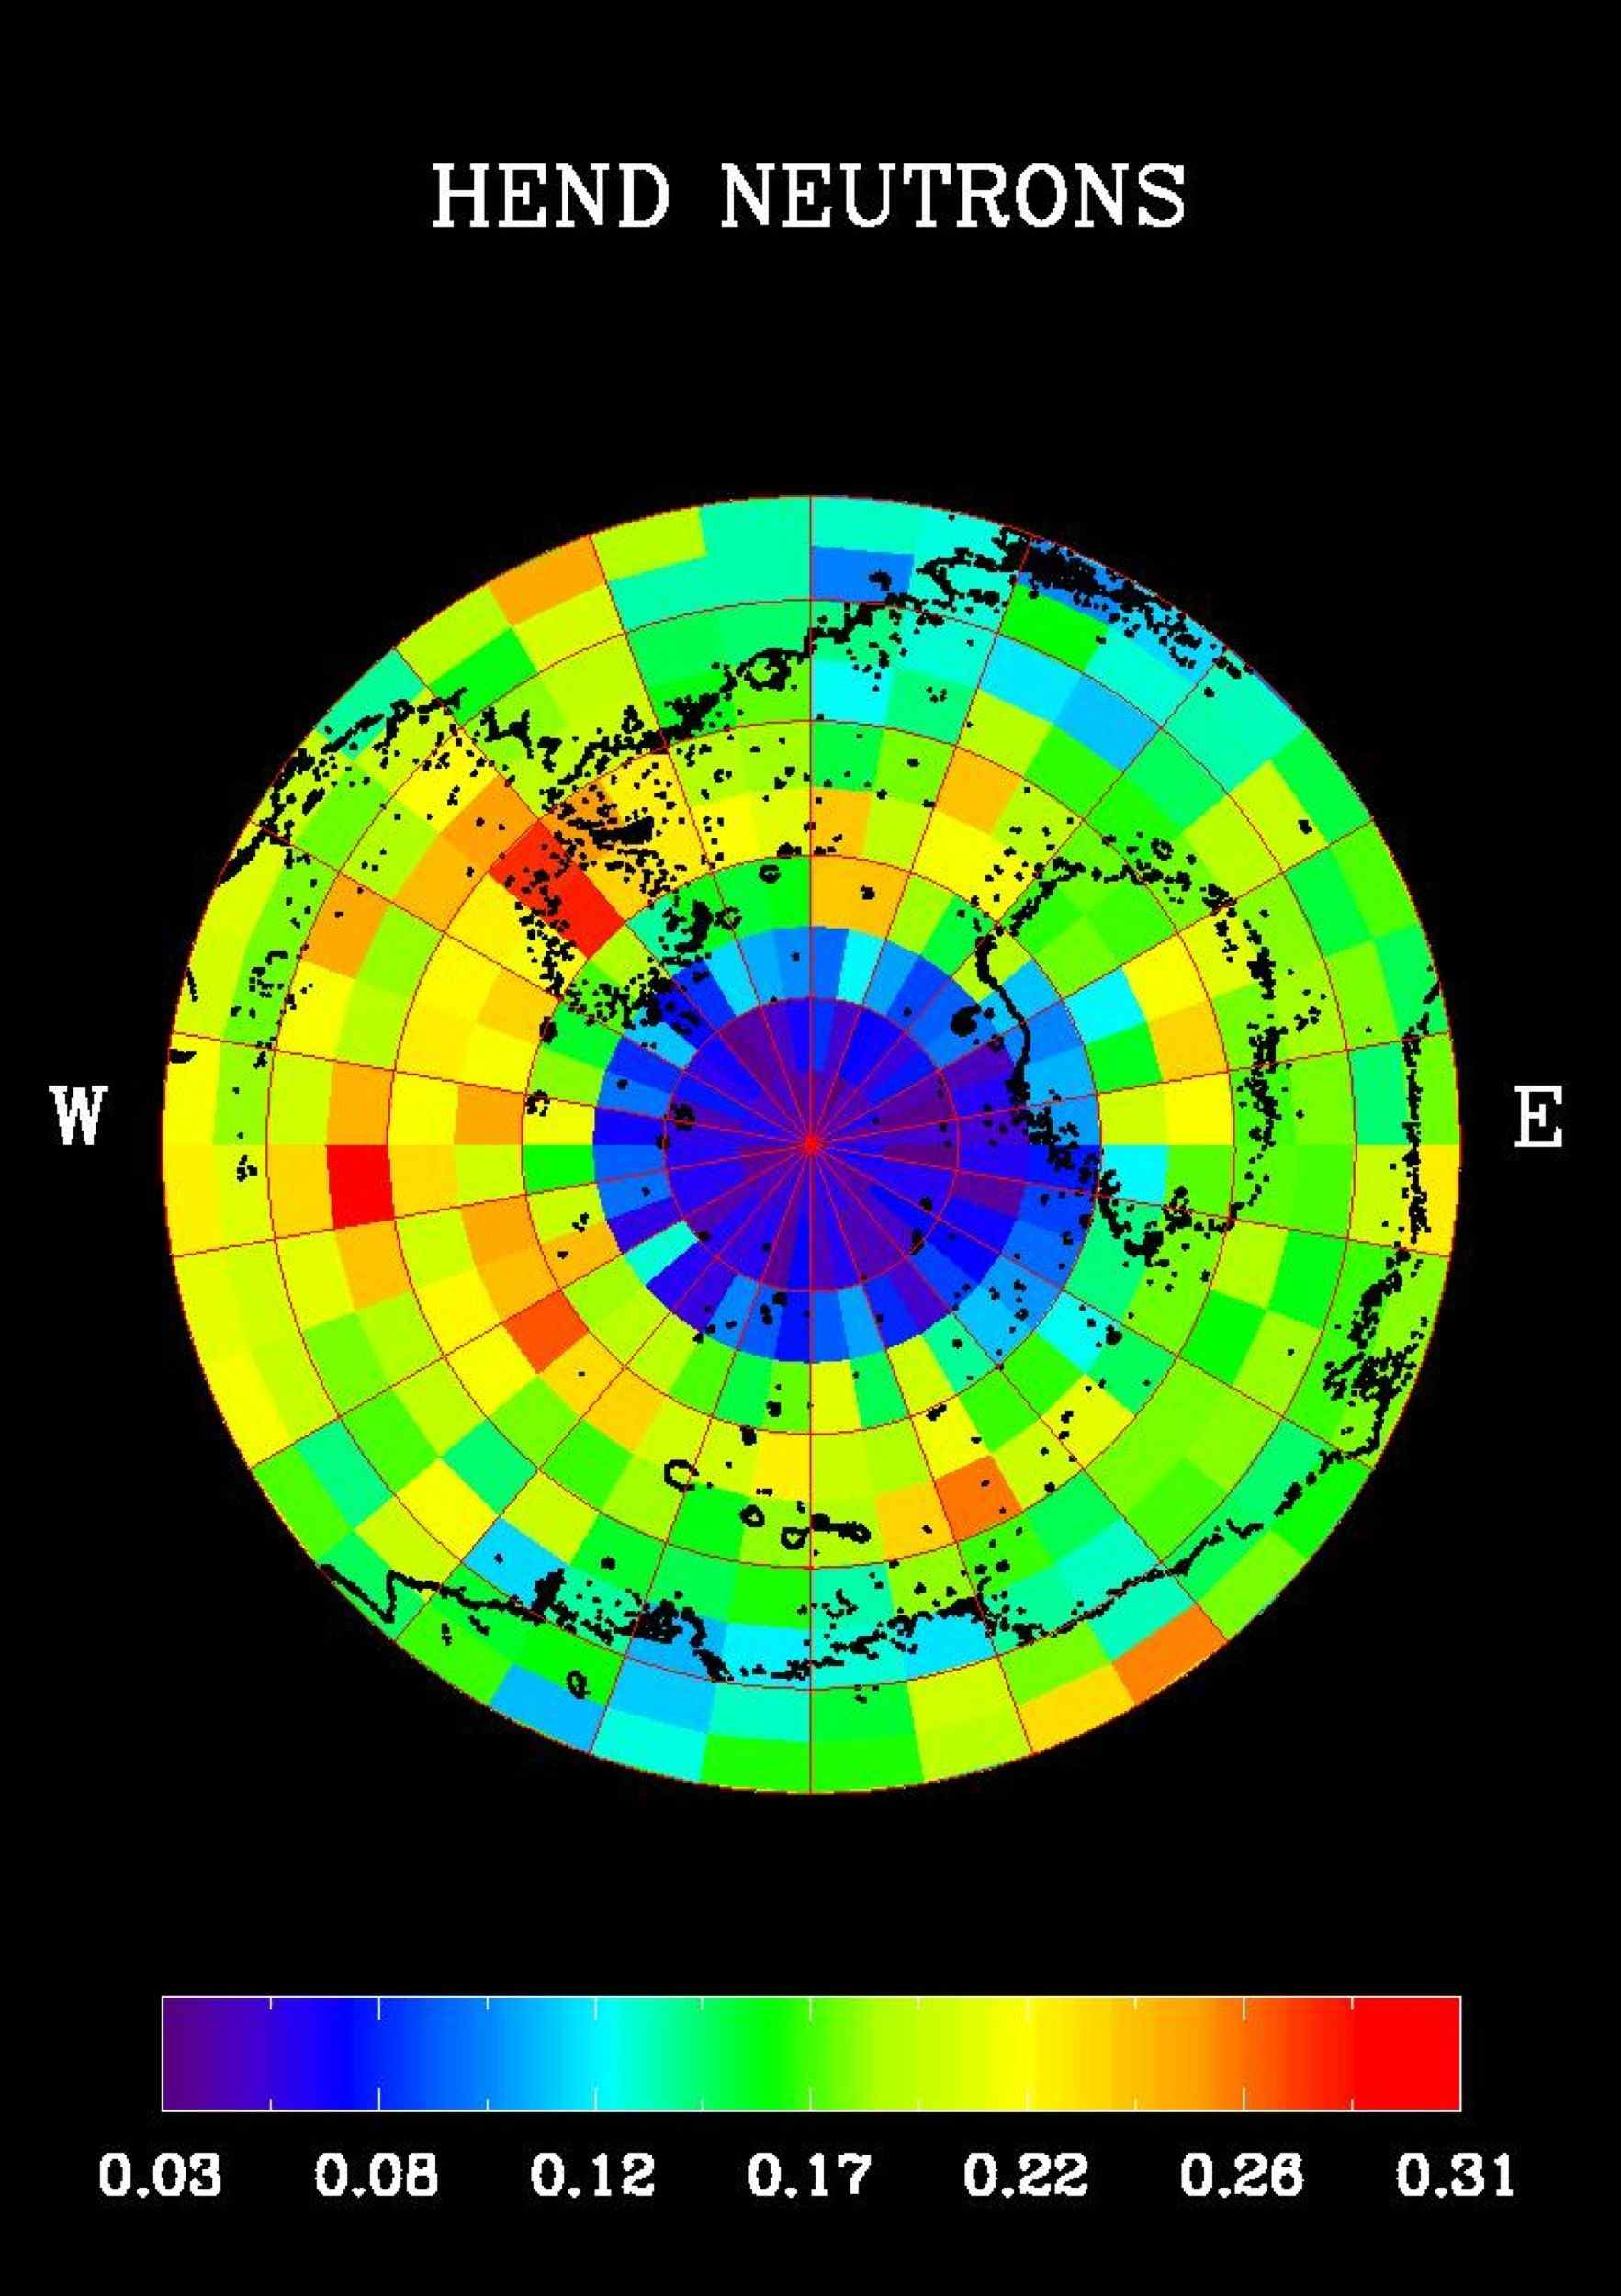 NASA's Mars Odyssey spacecraft produced this high-energy neutron detector map of neutrons in Mars' southern hemisphere. The blue region around the south pole indicates a high content of hydrogen in the upper 2 to 3 meters (7 to 10 feet) of the surface.